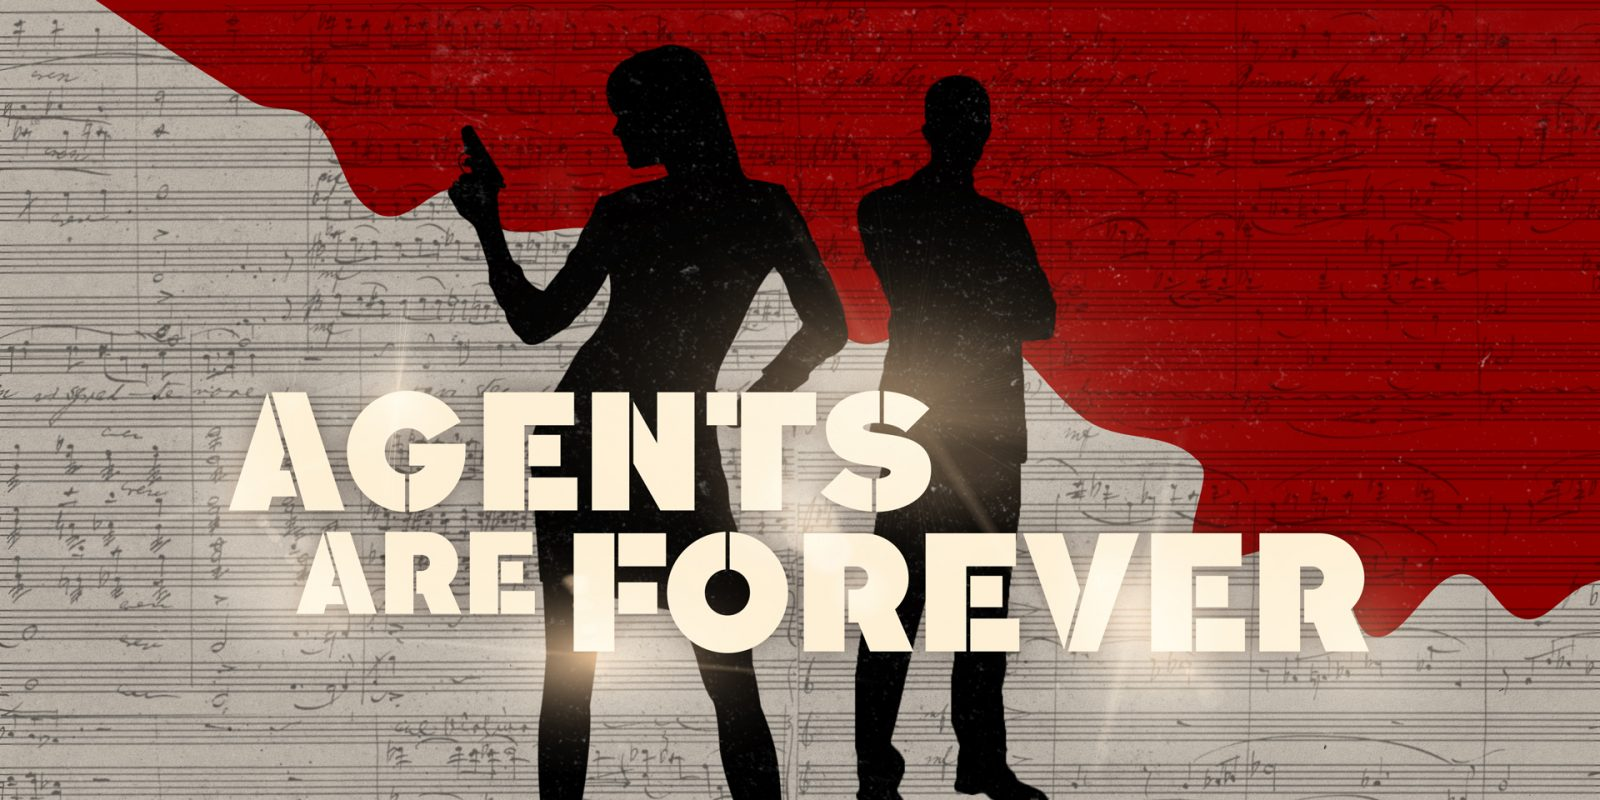 Agents are forever